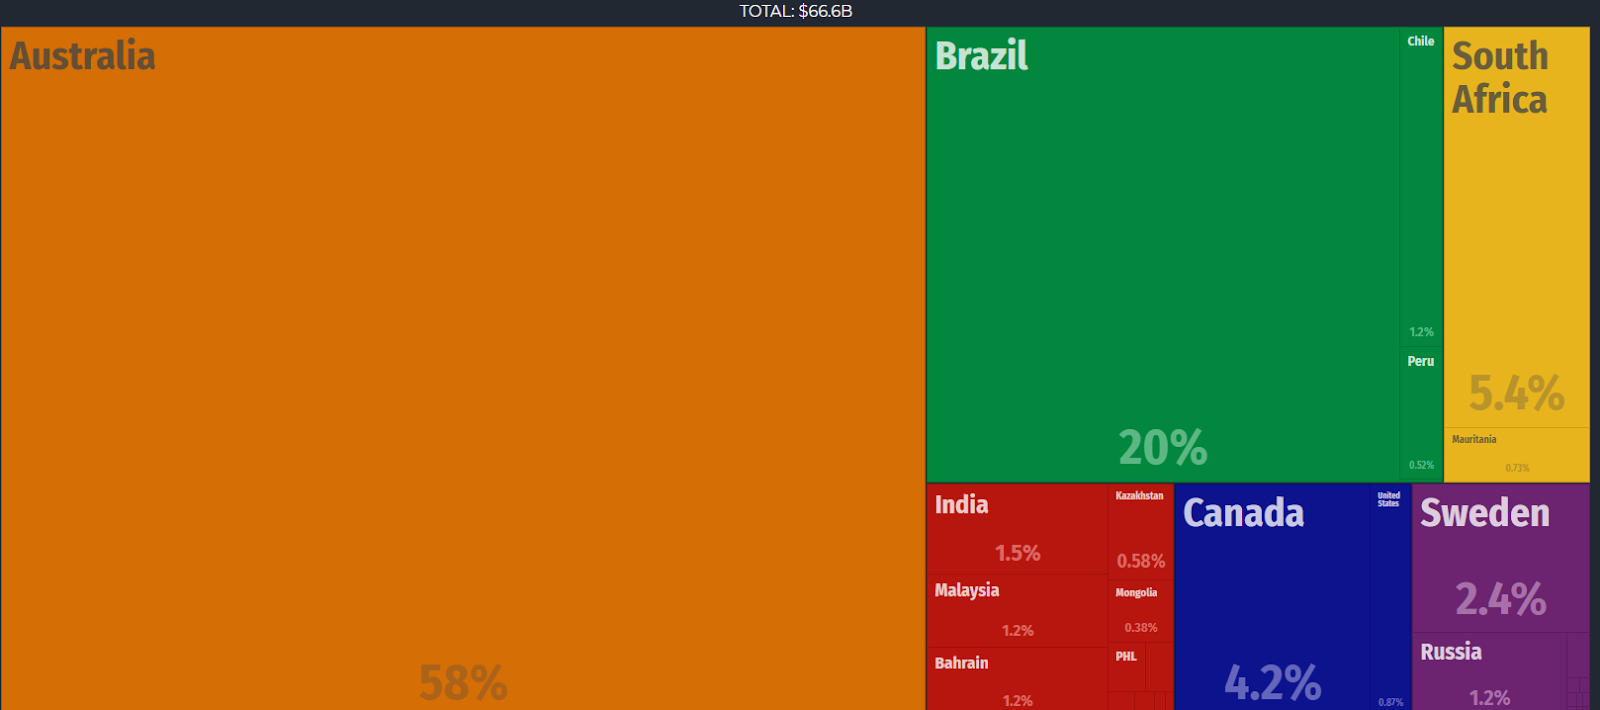 Australia's Iron ore exports compared to rest of world